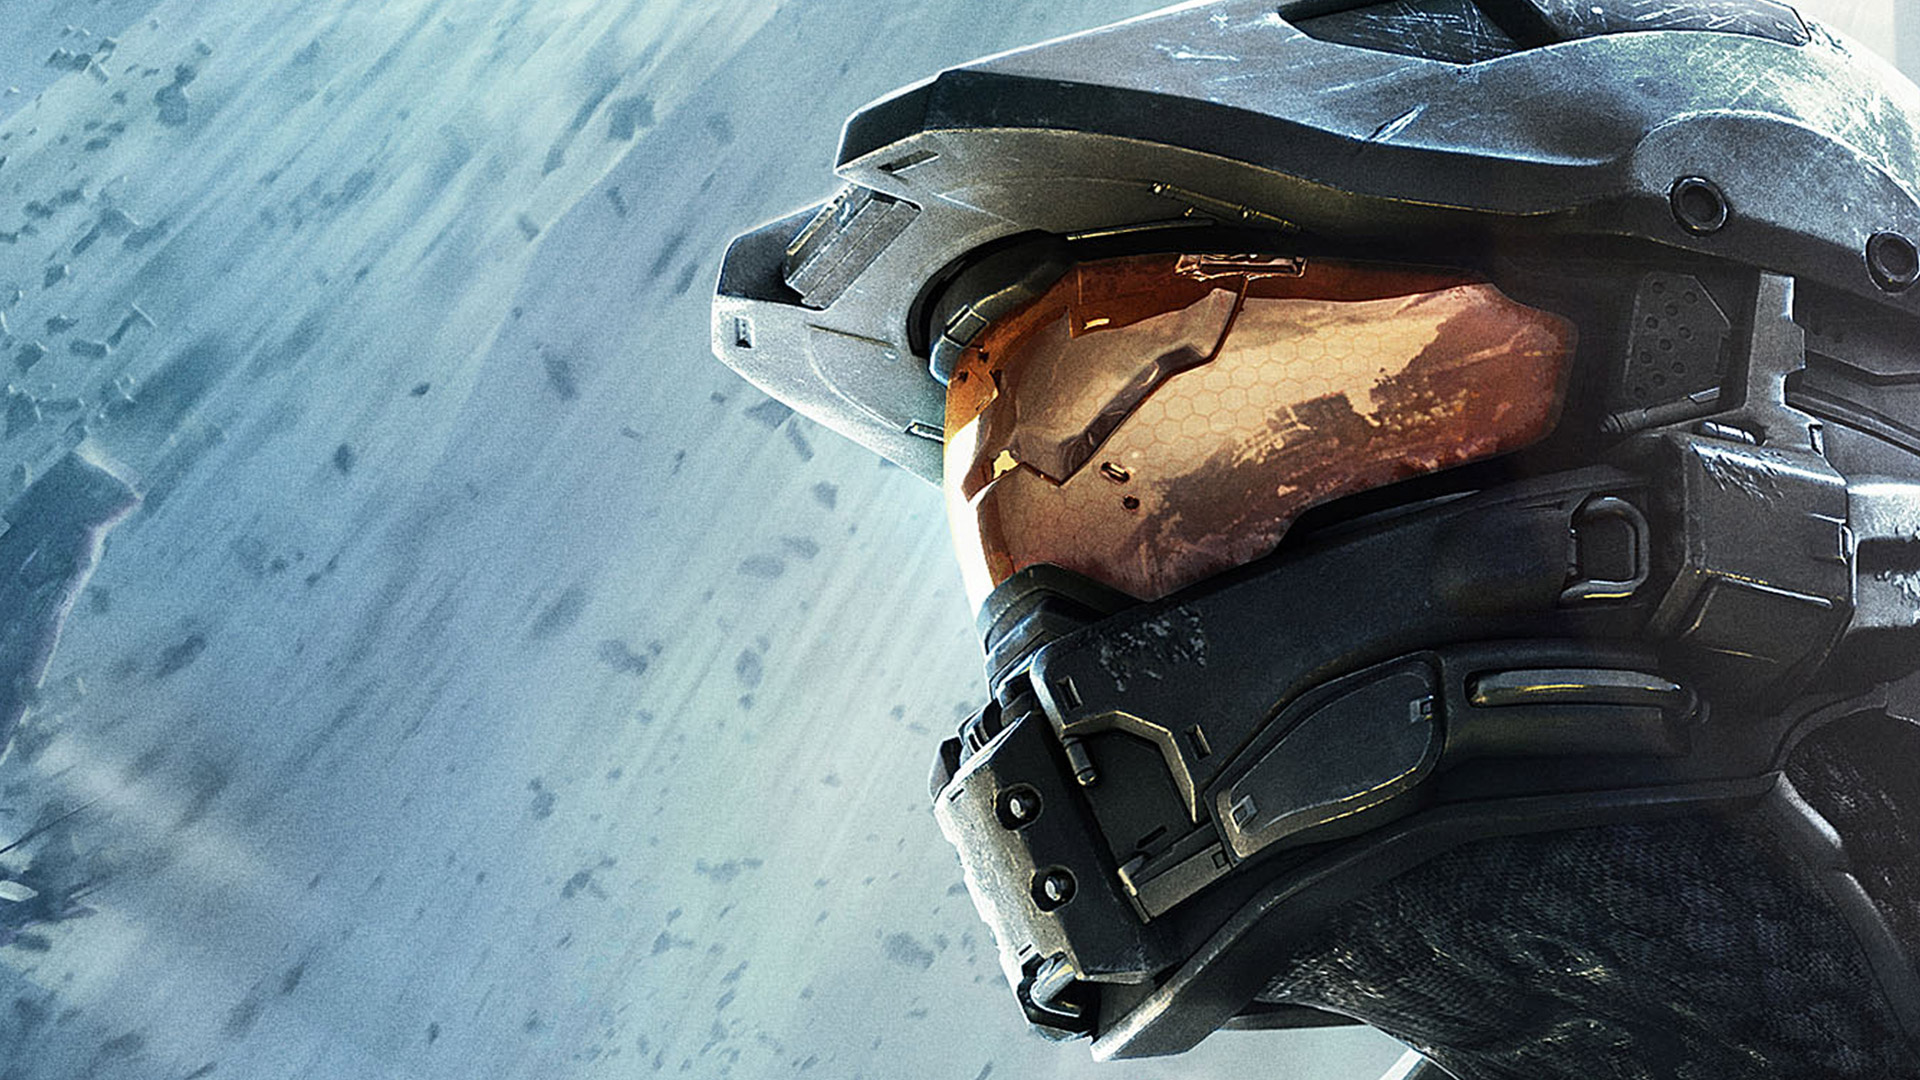 Download Halo 4 Wallpaper HD Wide 2996 Full Size 1920x1080